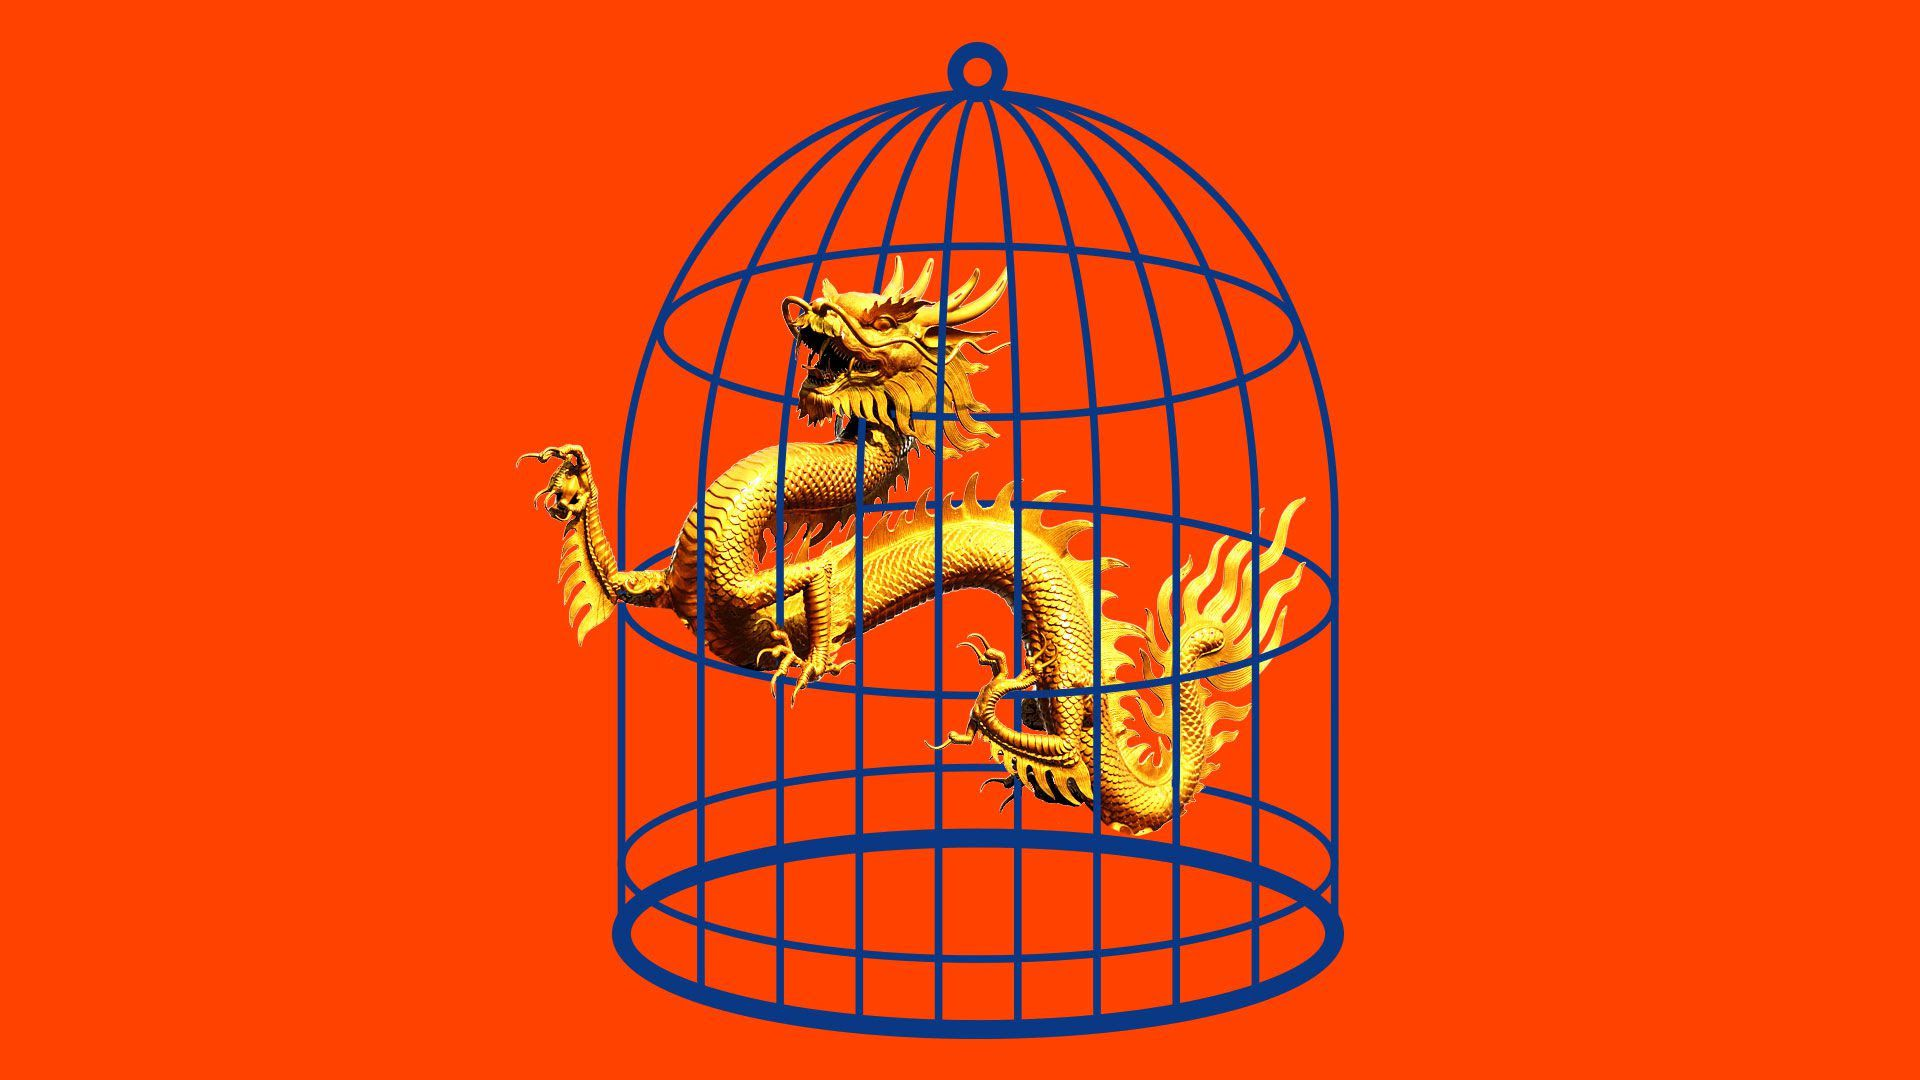 An illustration of a Chinese dragon caught in a cage